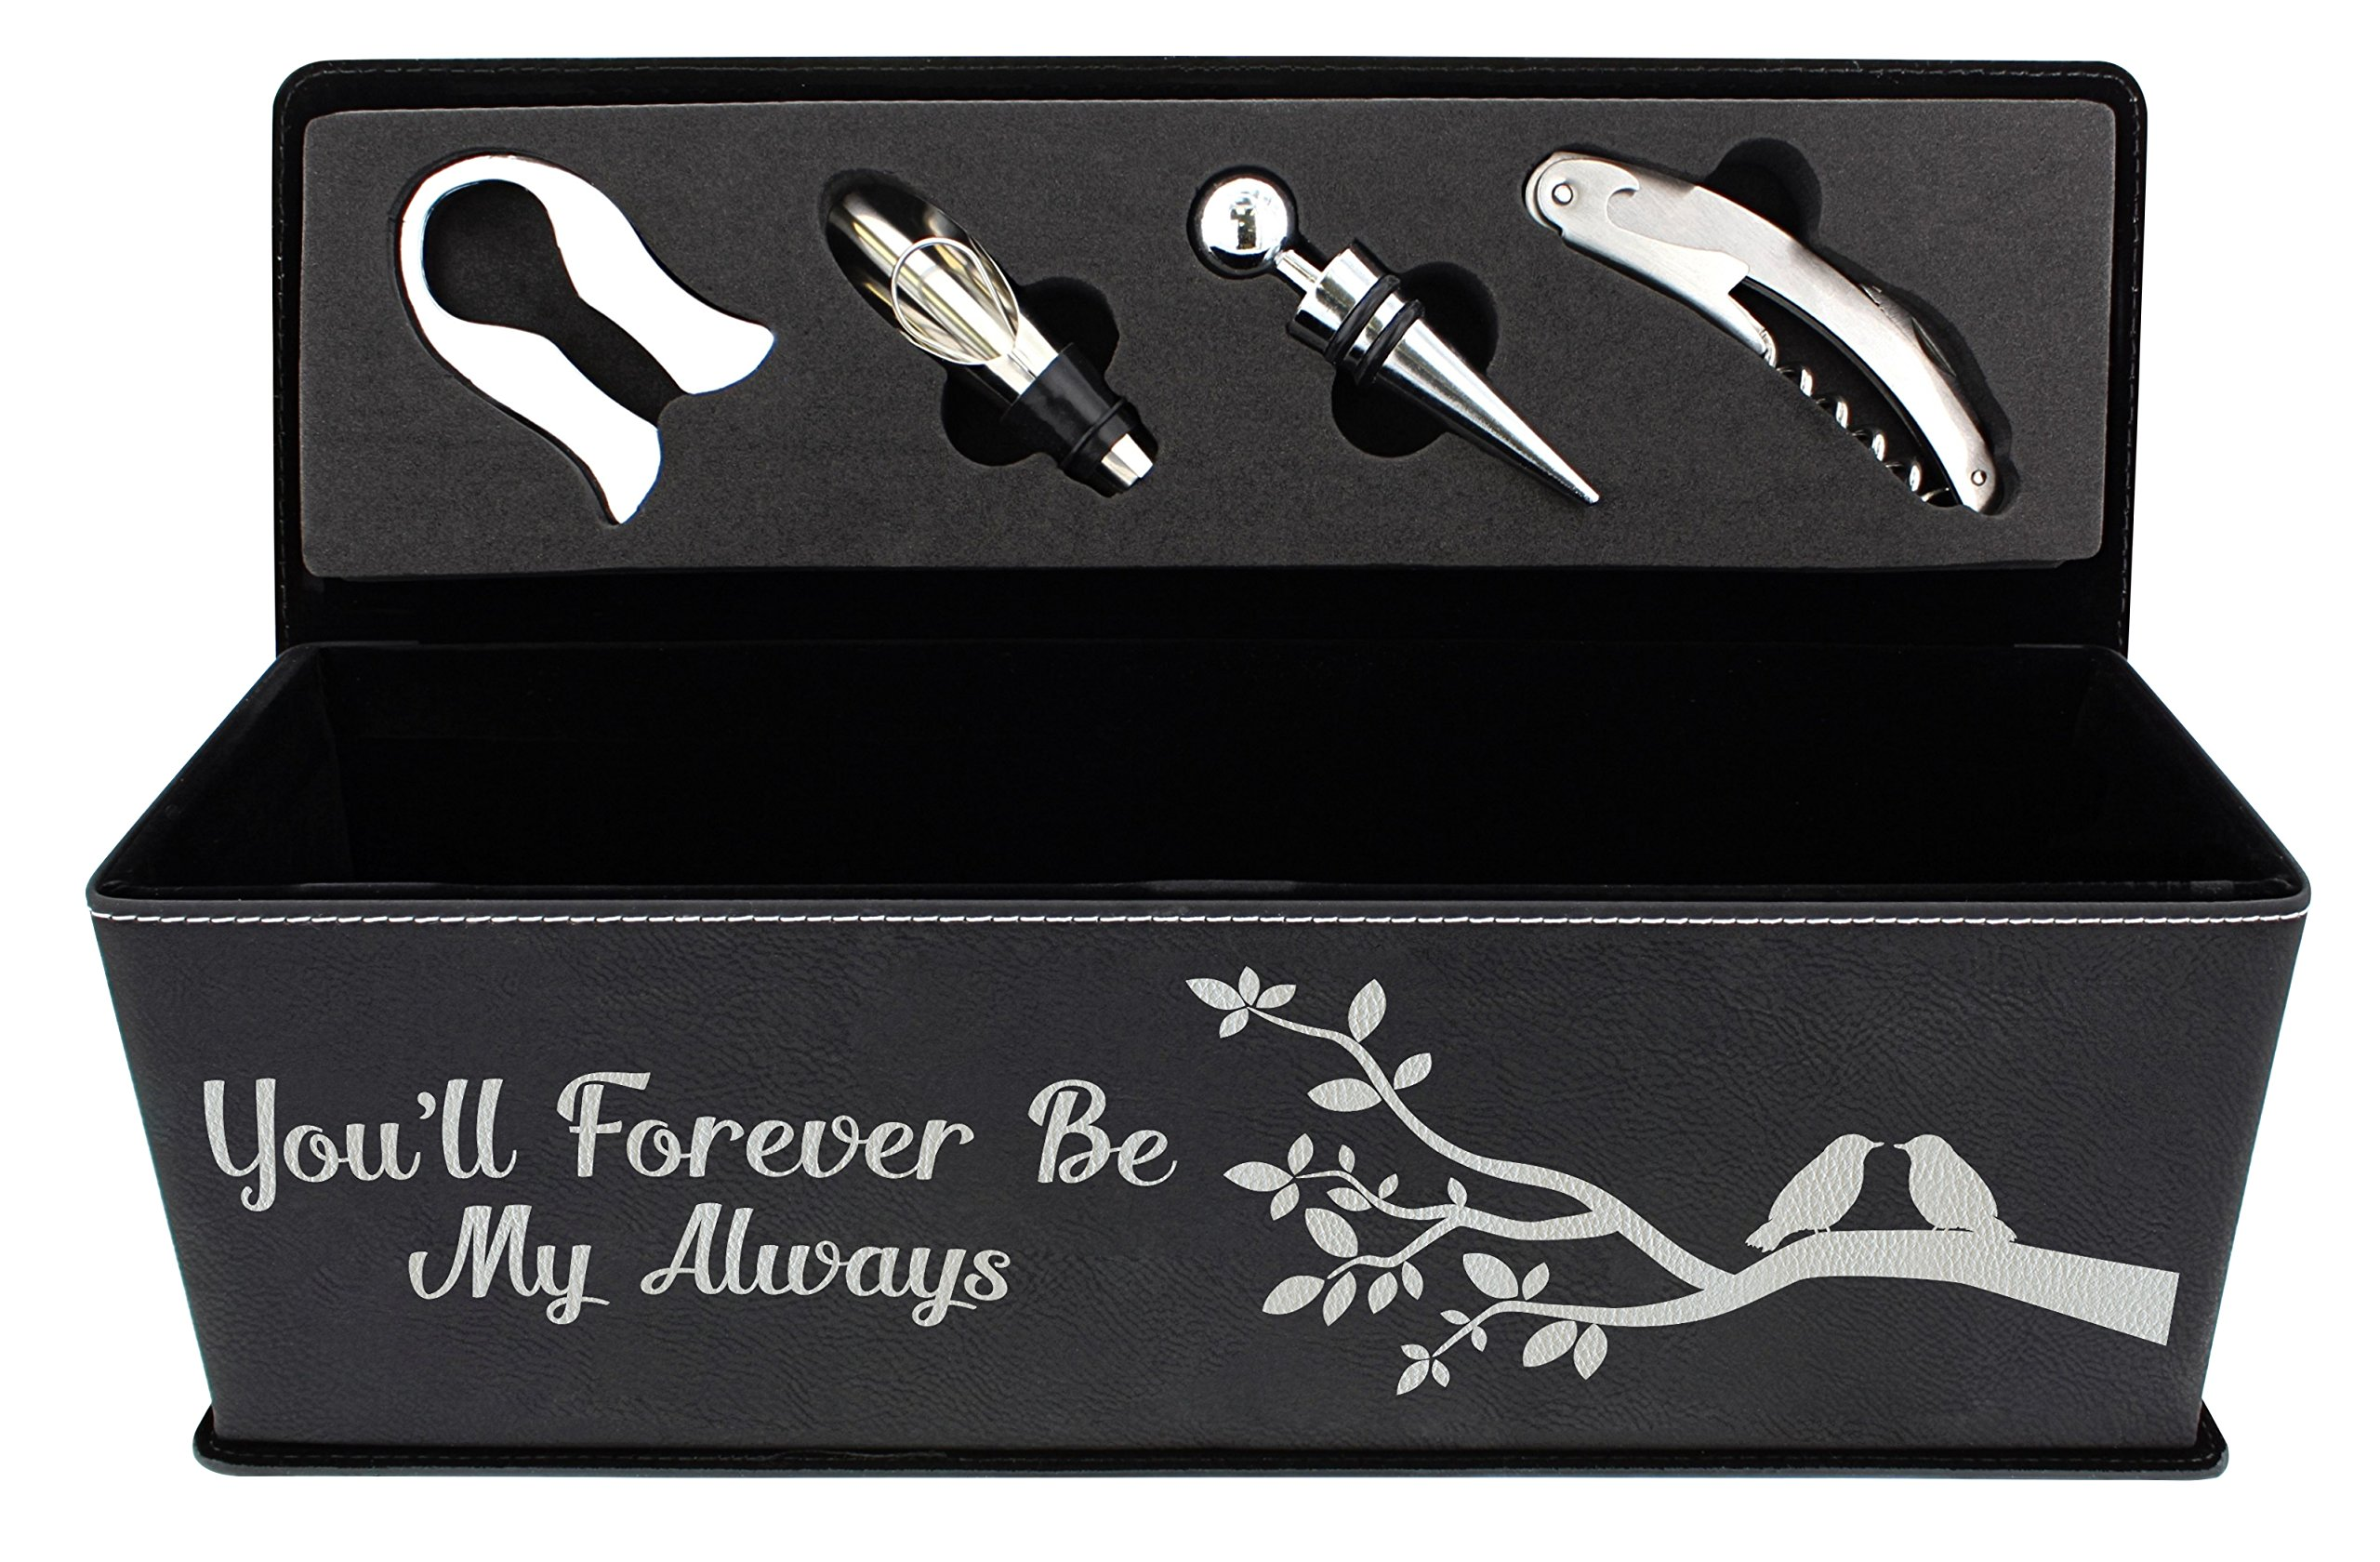 Anniversary Gifts for Her You'll Forever Be My Always Wedding Gifts for Husband and Wife Gifts Laser Engraved Leather Wine Gift Box & Wine Accessory Kit